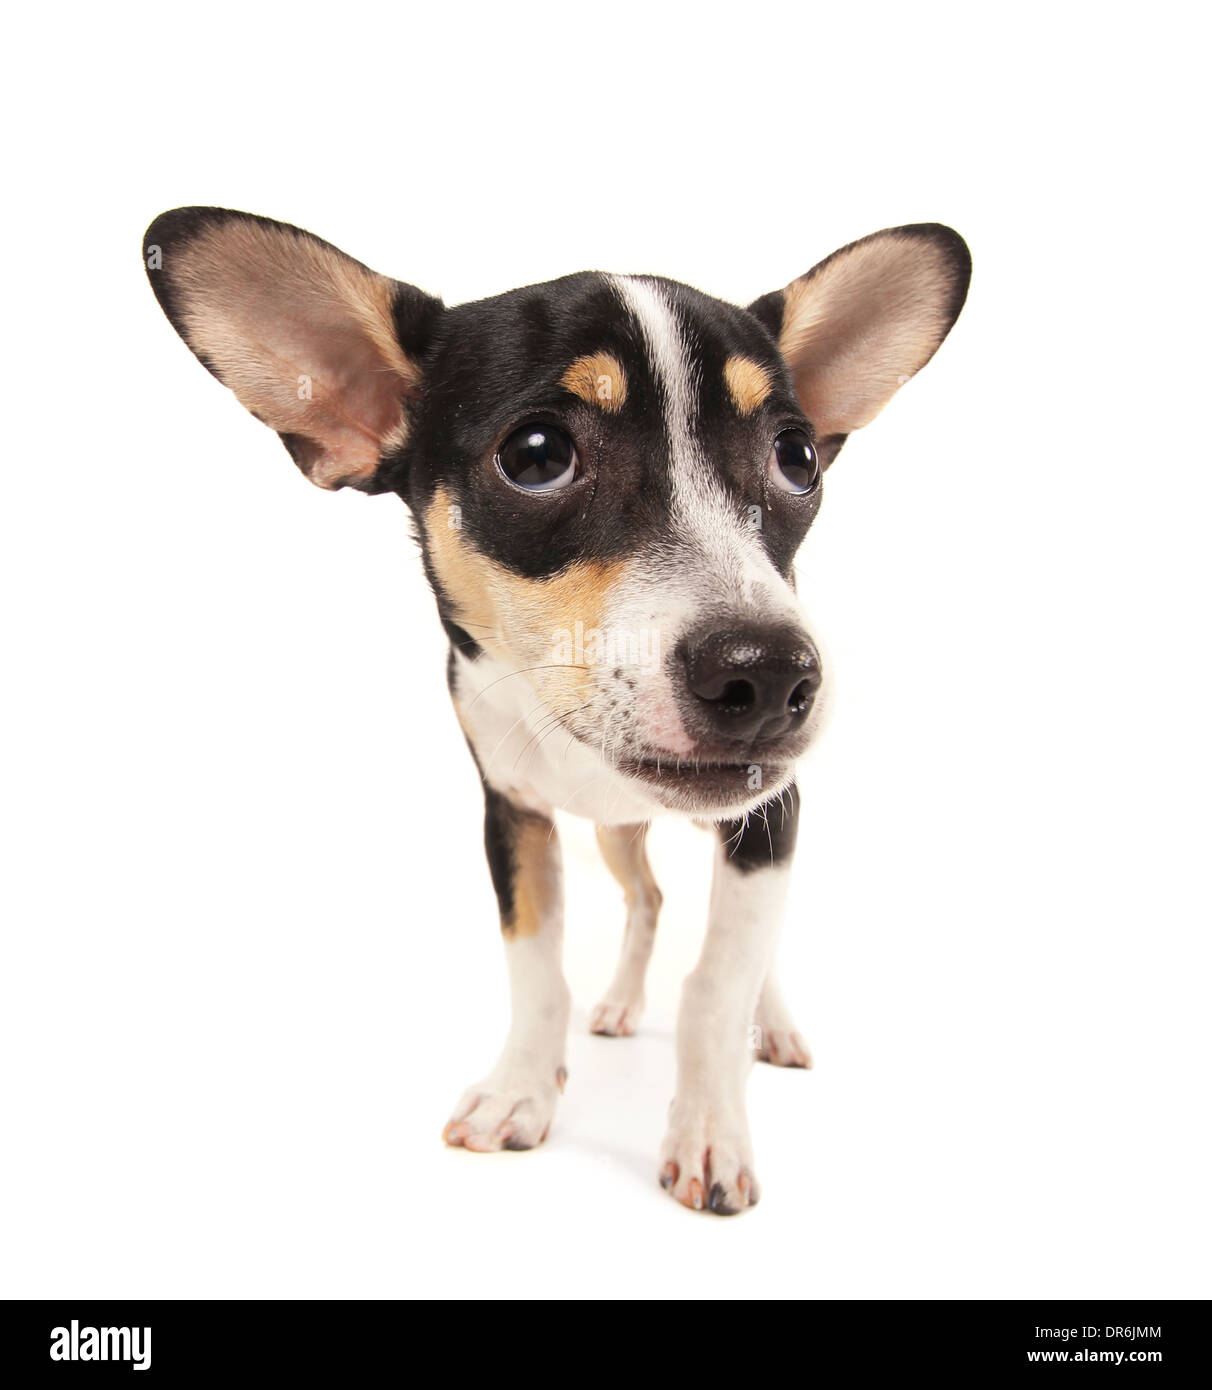 studio shot of a rat terrier chihuahua mix isolated on a white background - Stock Image